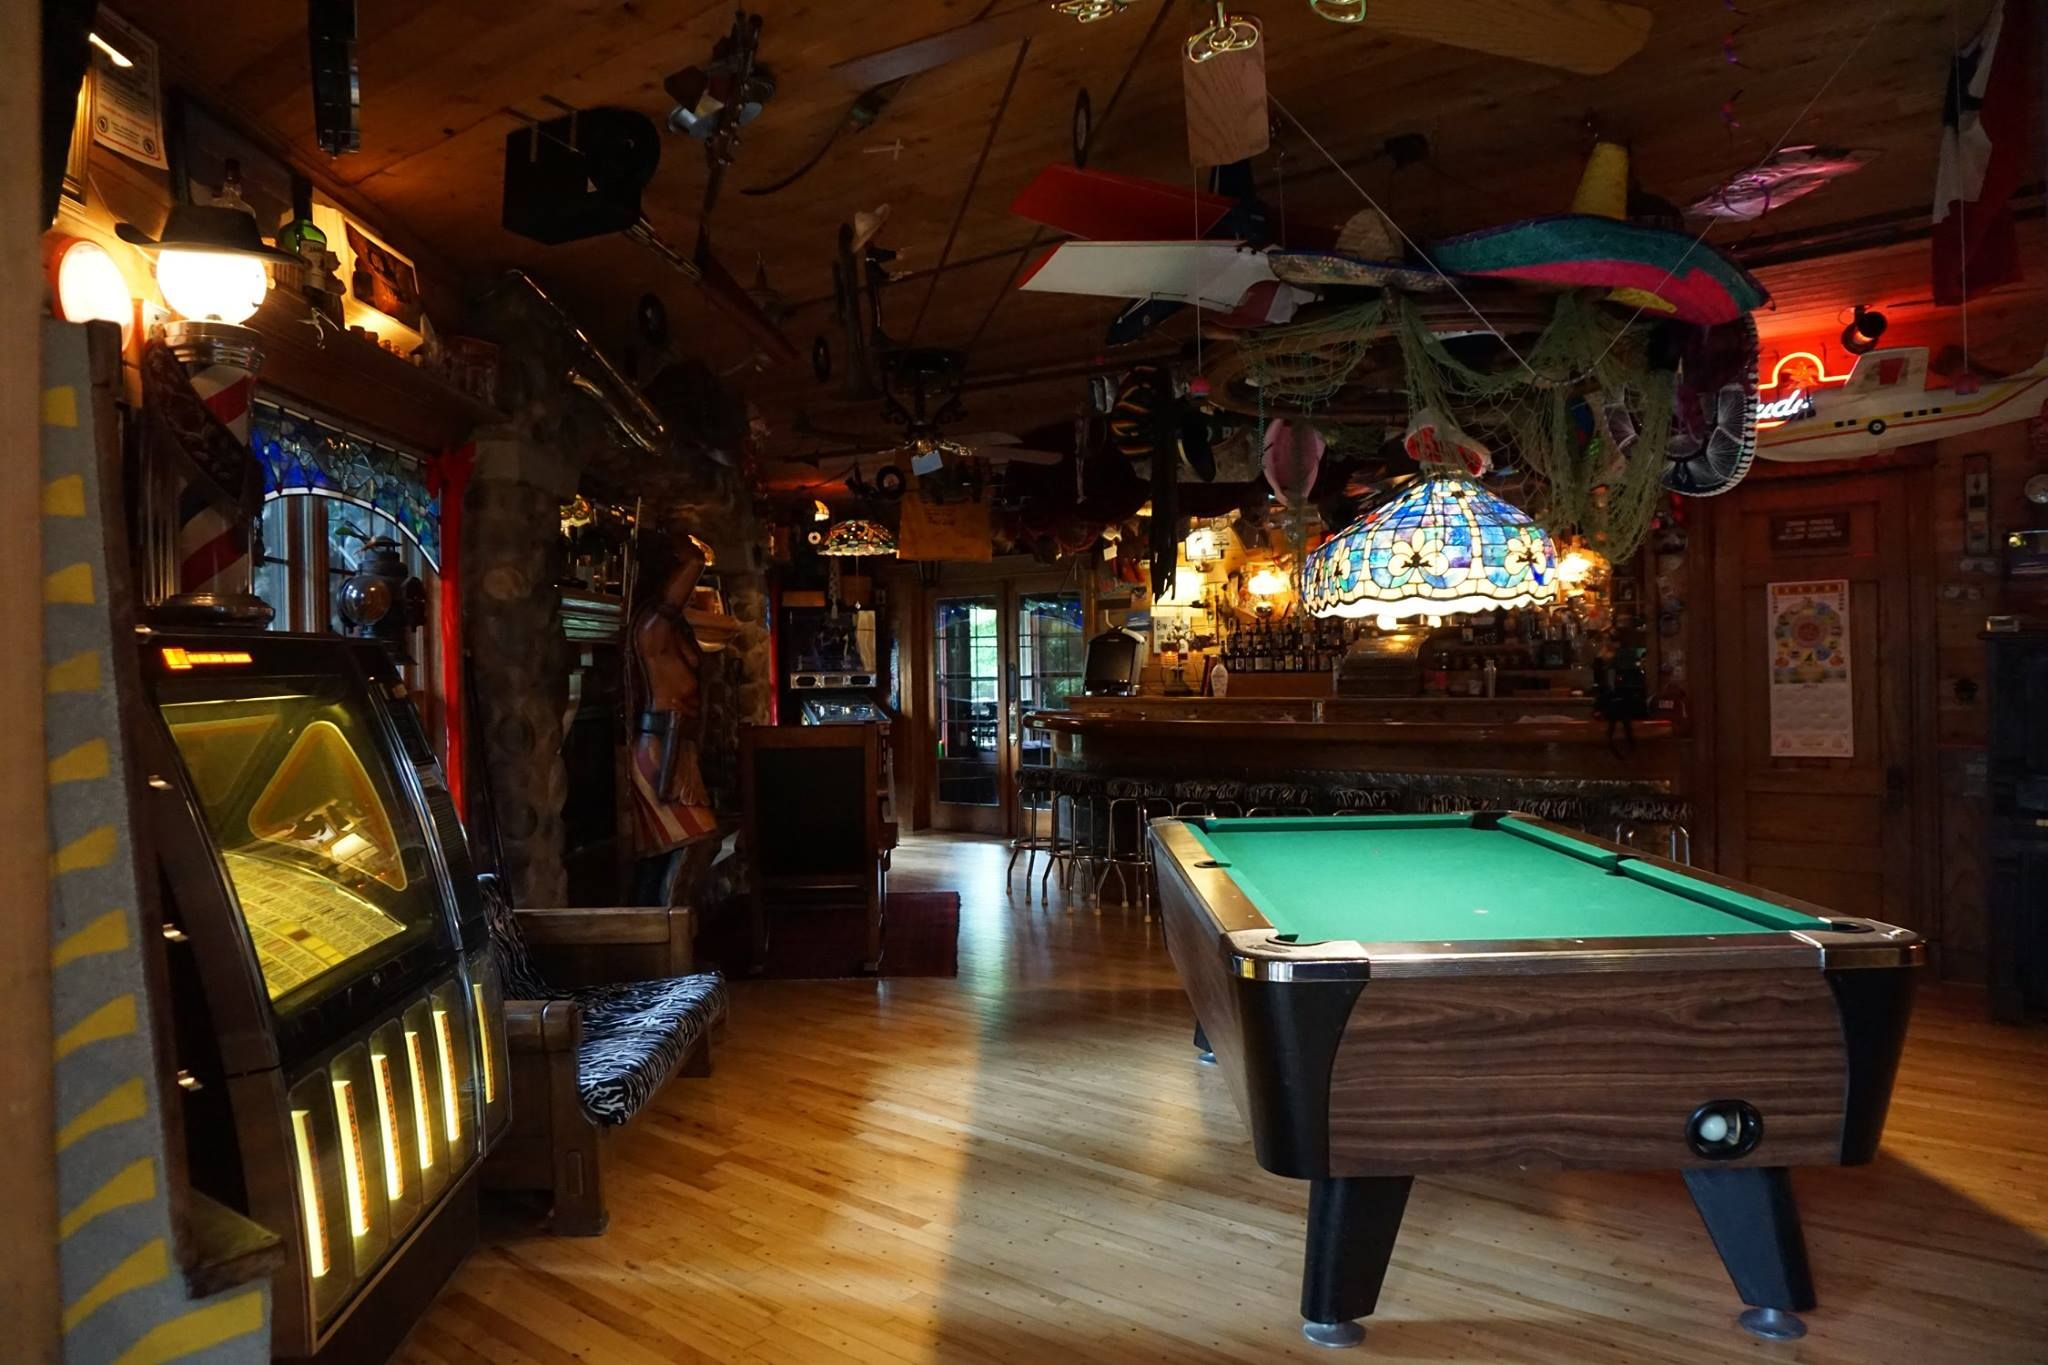 Adeline S House Of Cool Is Great For Summer Parties And Amazing For Winter Getaways Private Rental Cabin C Wisconsin Vacation Beautiful Cabins Amish Country From lake michigan to inland lakes to outdoor pools, there are plenty of places to beat the heat. pinterest